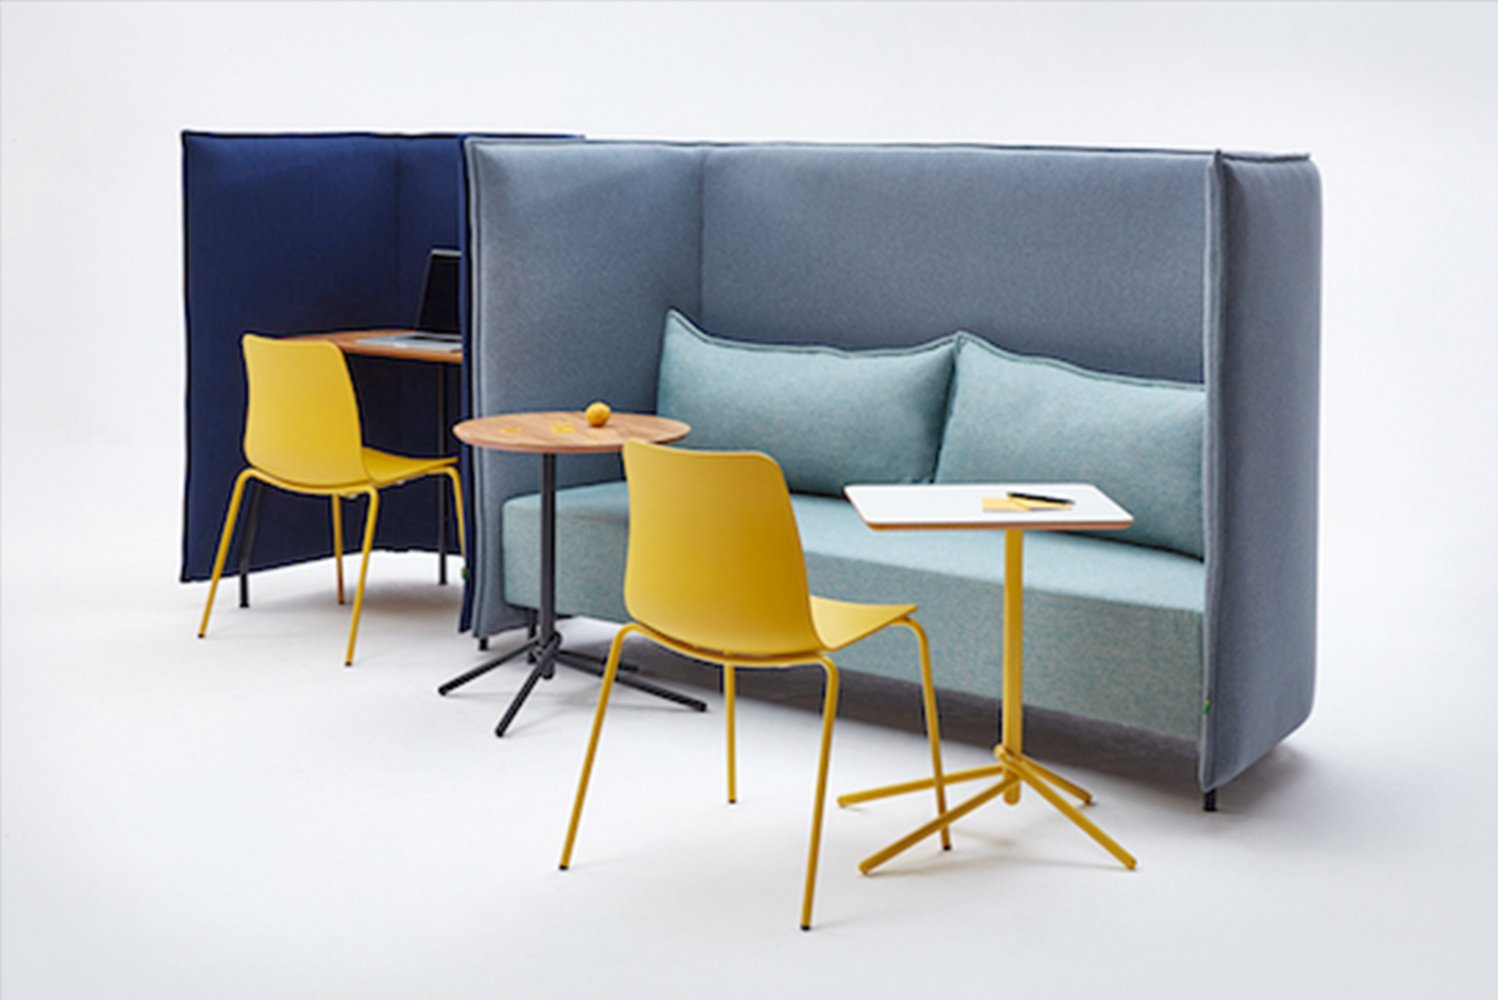 Introducing the Knot table by British furniture company Naughtone.